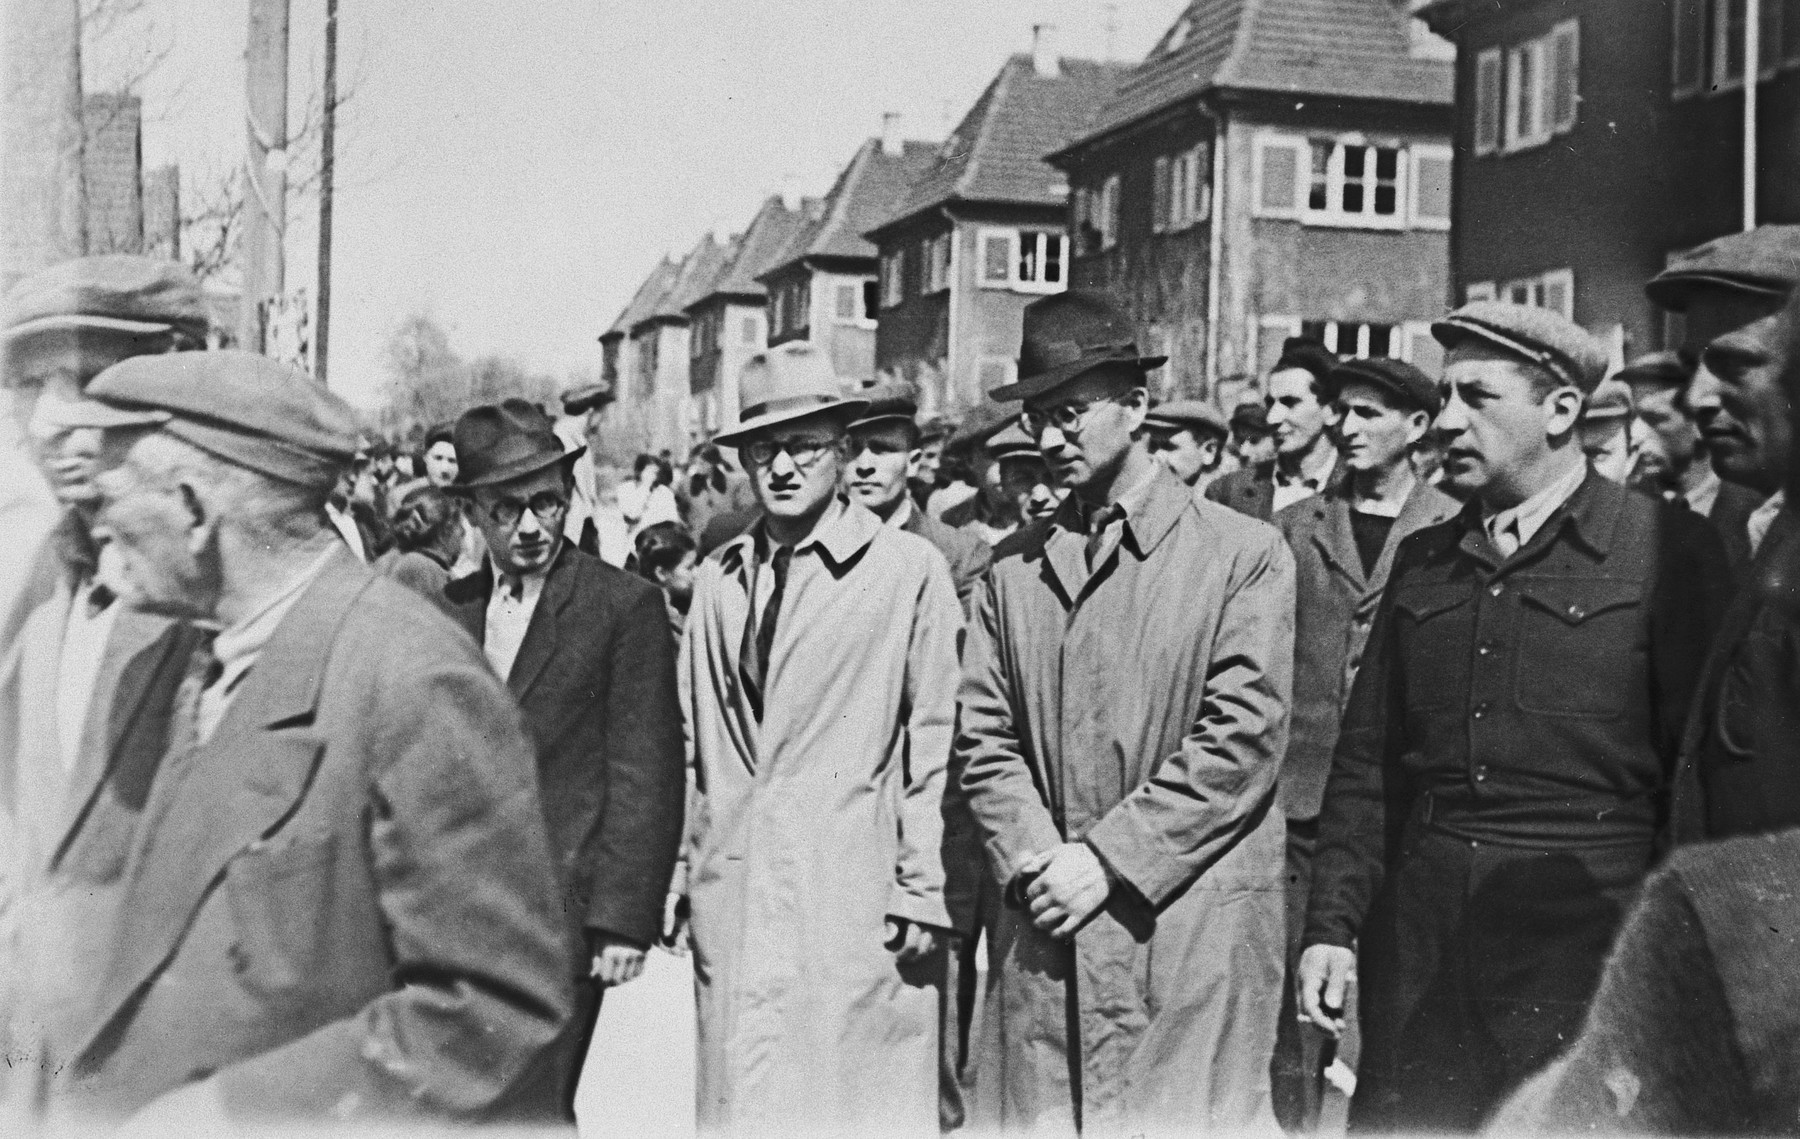 Jewish displaced persons gather on a busy street in the Wasseralfingen DP camp.  Pictured in the dark hat is camp director, Natan Slepian.